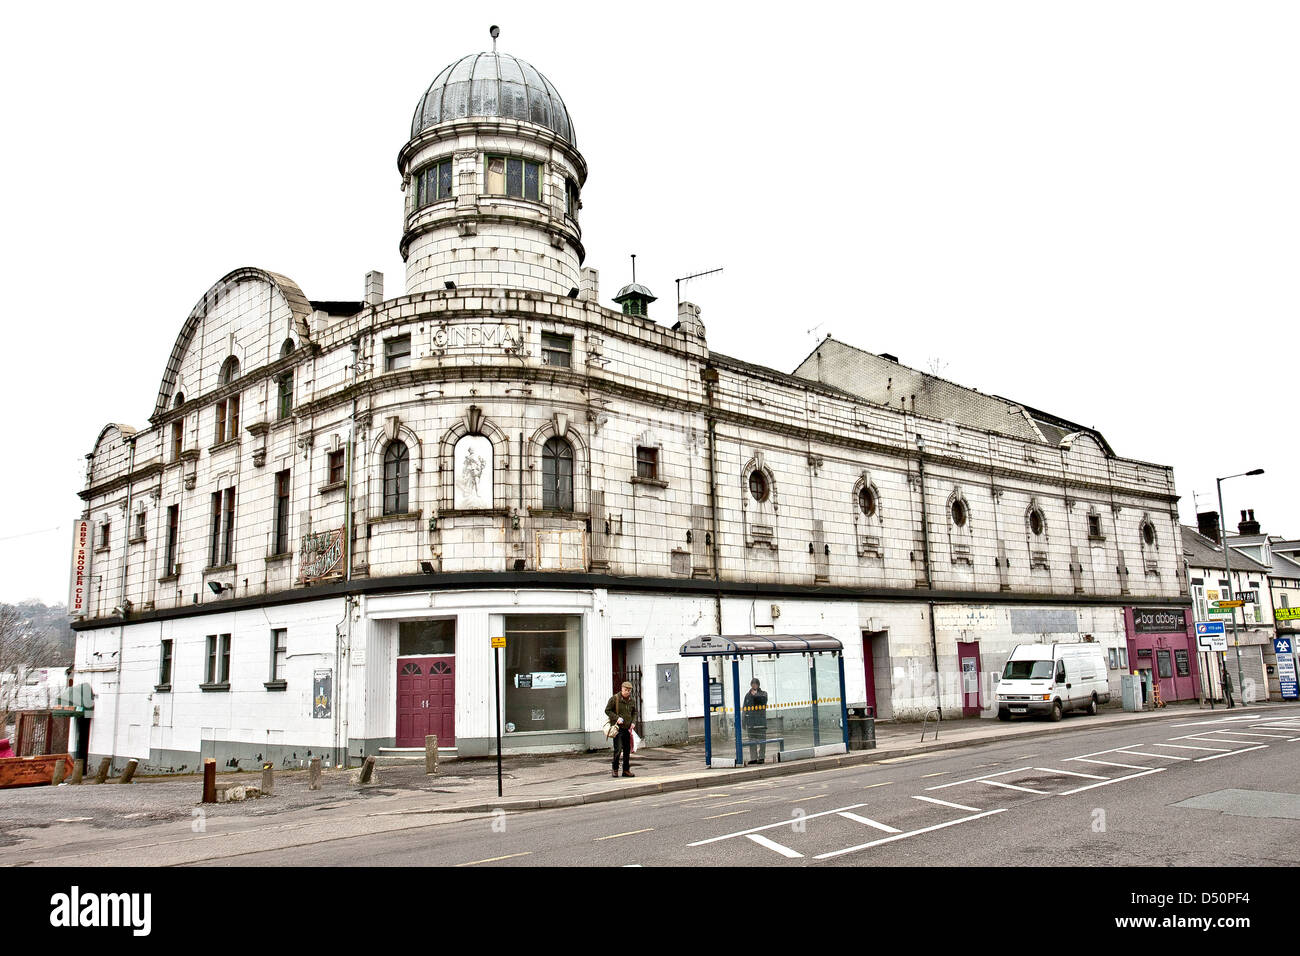 Abbeydale Picture House, Abbeydale Road Sheffield South Yorkshire England UK Europe - Stock Image